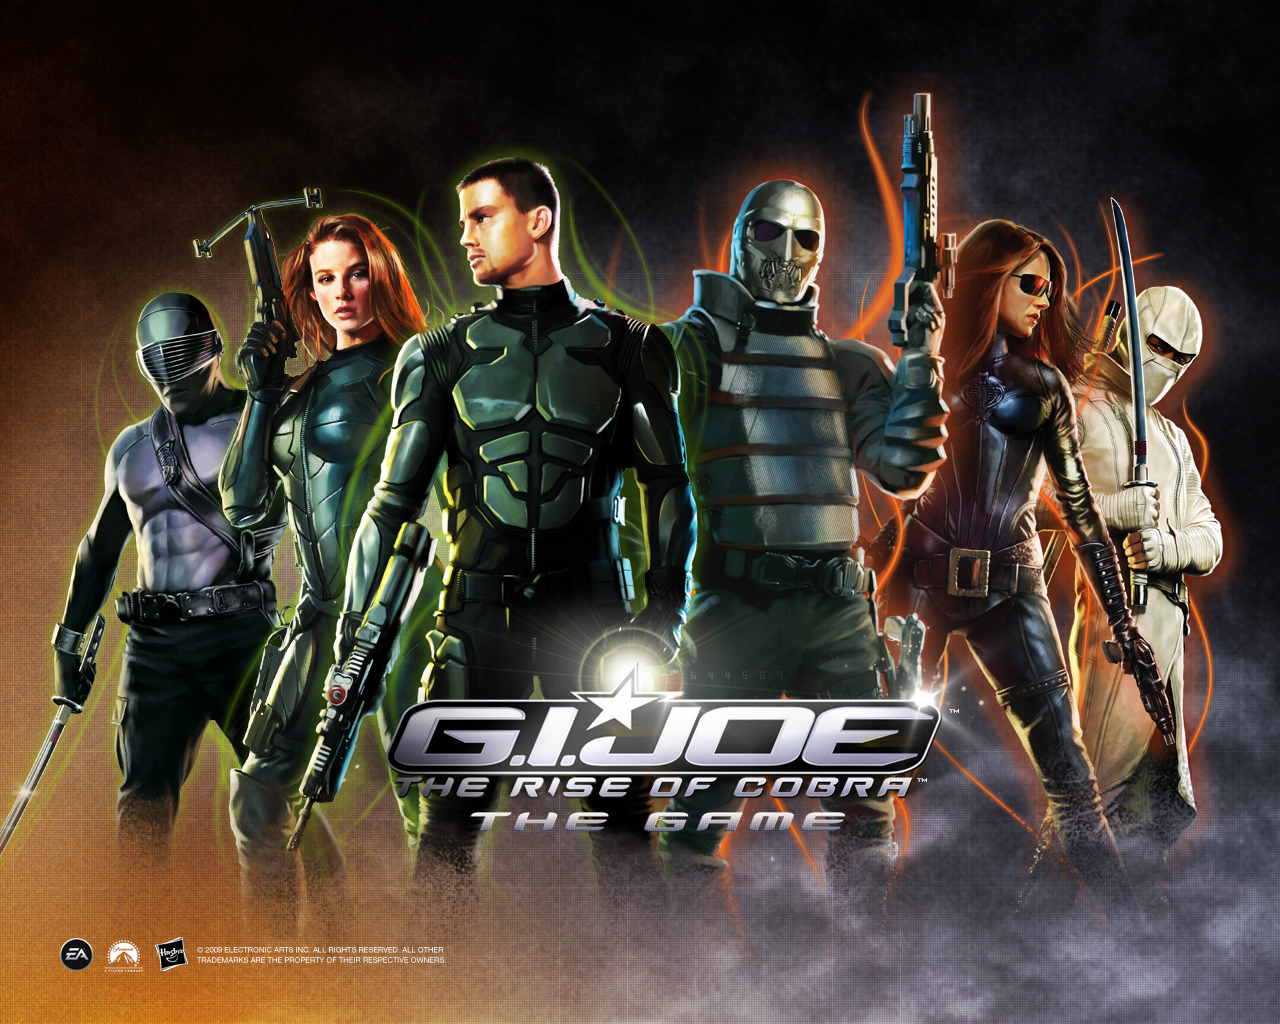 Movie Pictures Pictures of GI Joe The Rise of Cobra Movie 2009 1280x1024